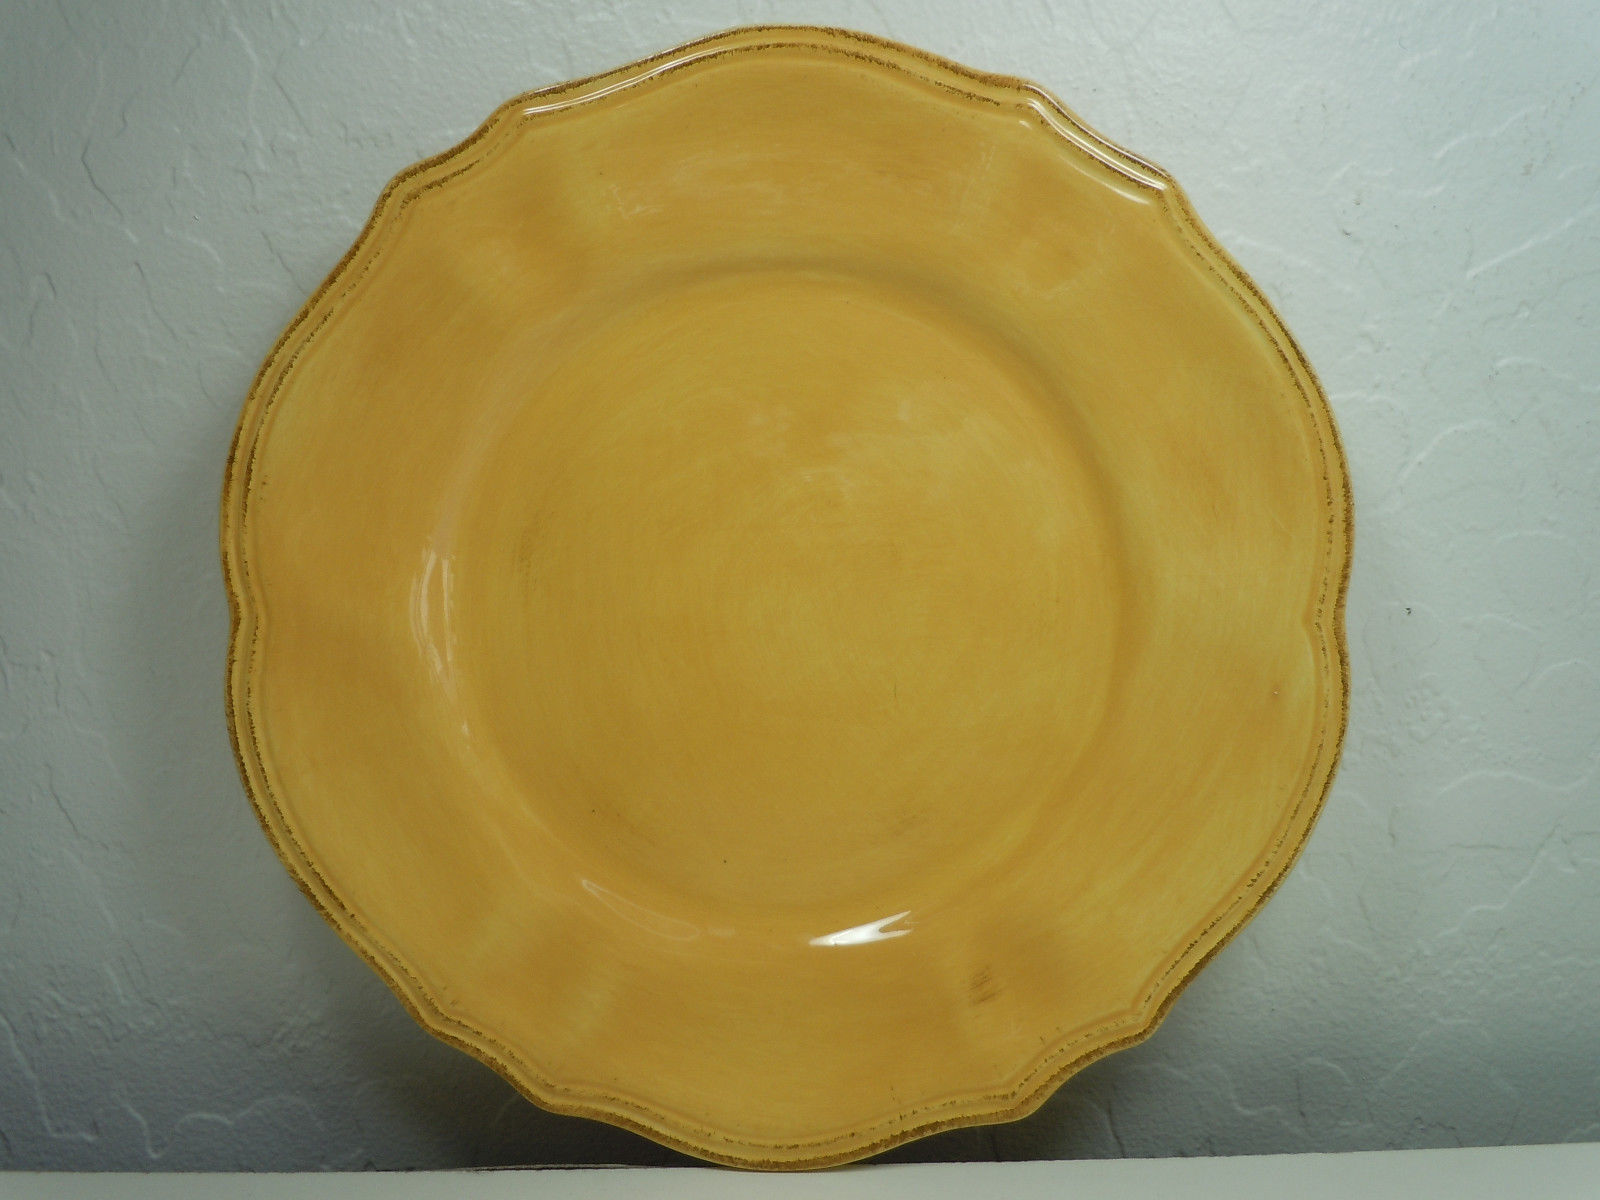 Primary image for Daniel Cremieux St Remy Golden Apricot Salad Plate